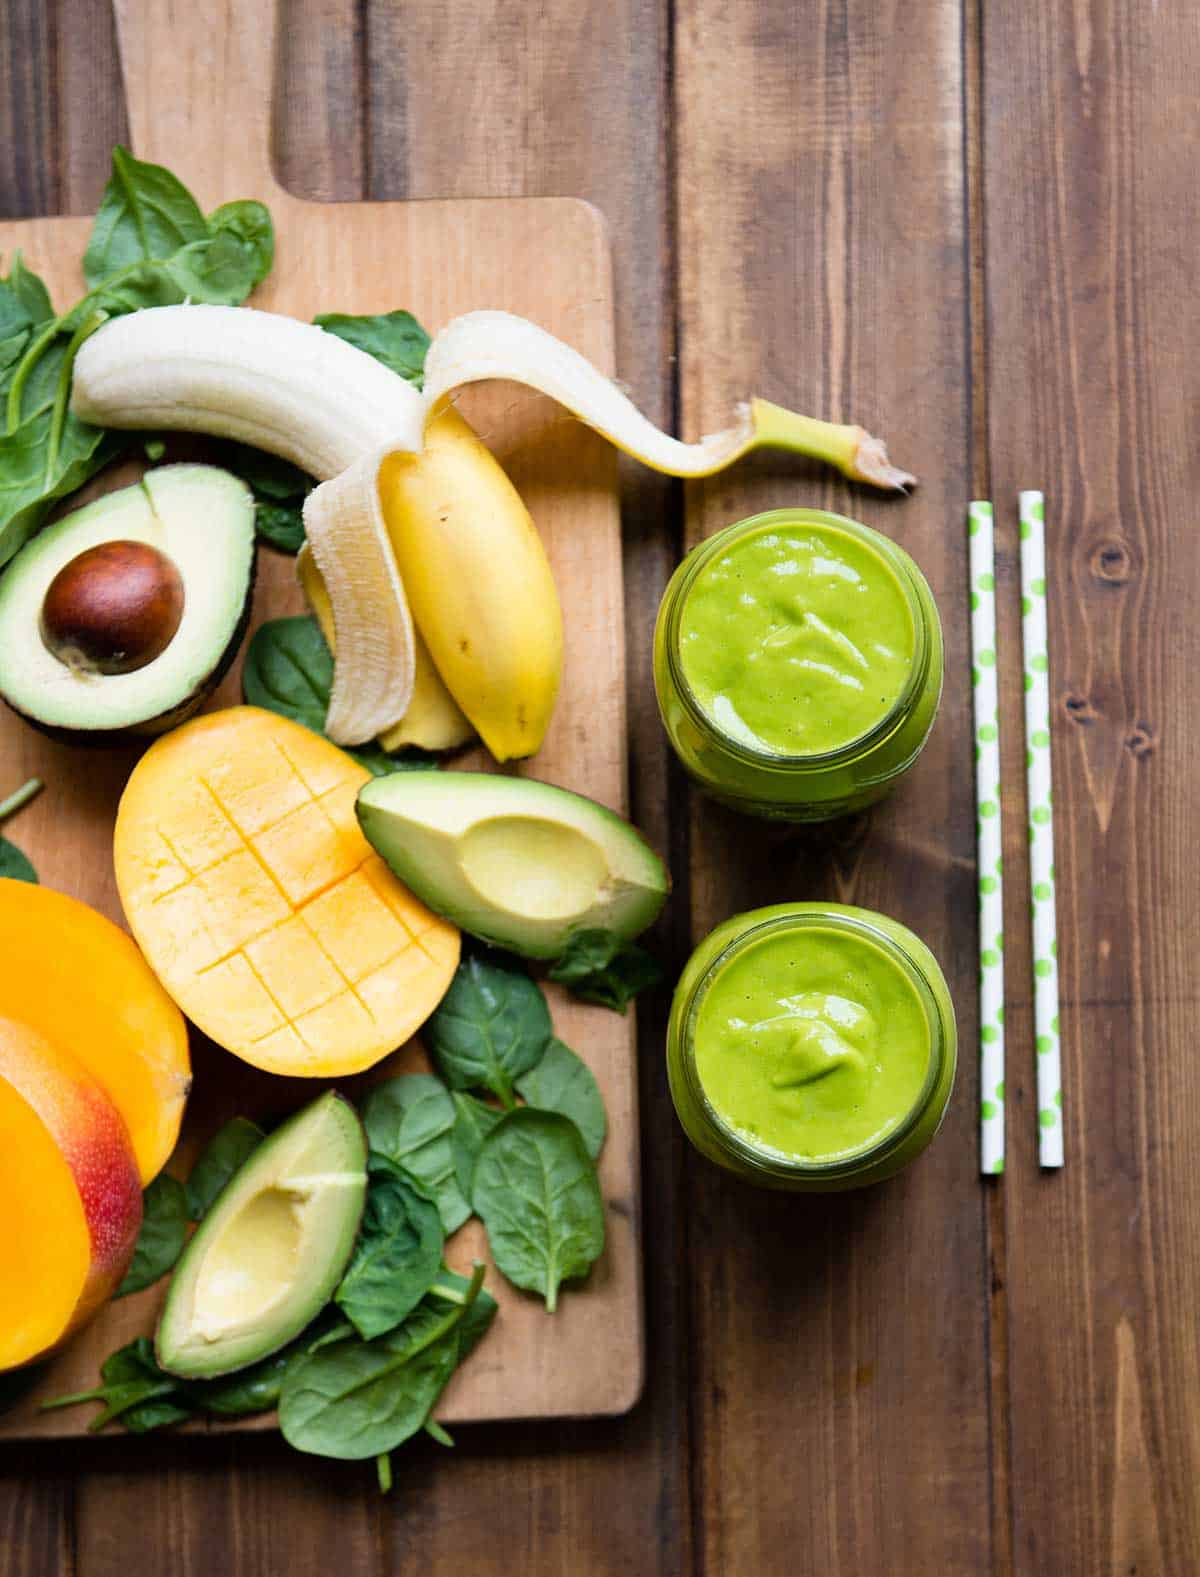 Rich and creamy green smoothie recipe